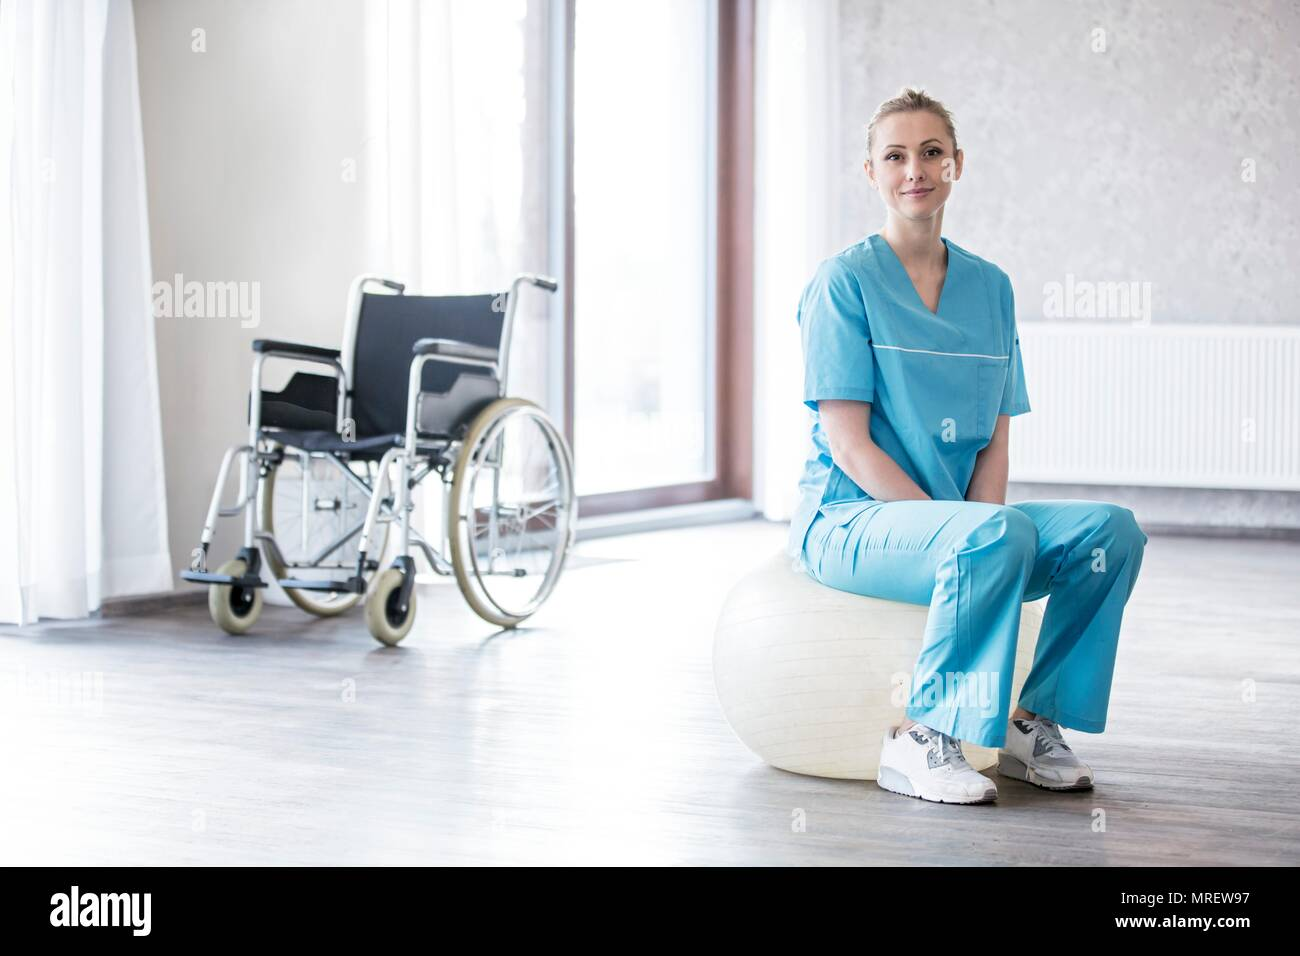 Young female physiotherapist sitting on Swiss ball with wheelchair in background. - Stock Image